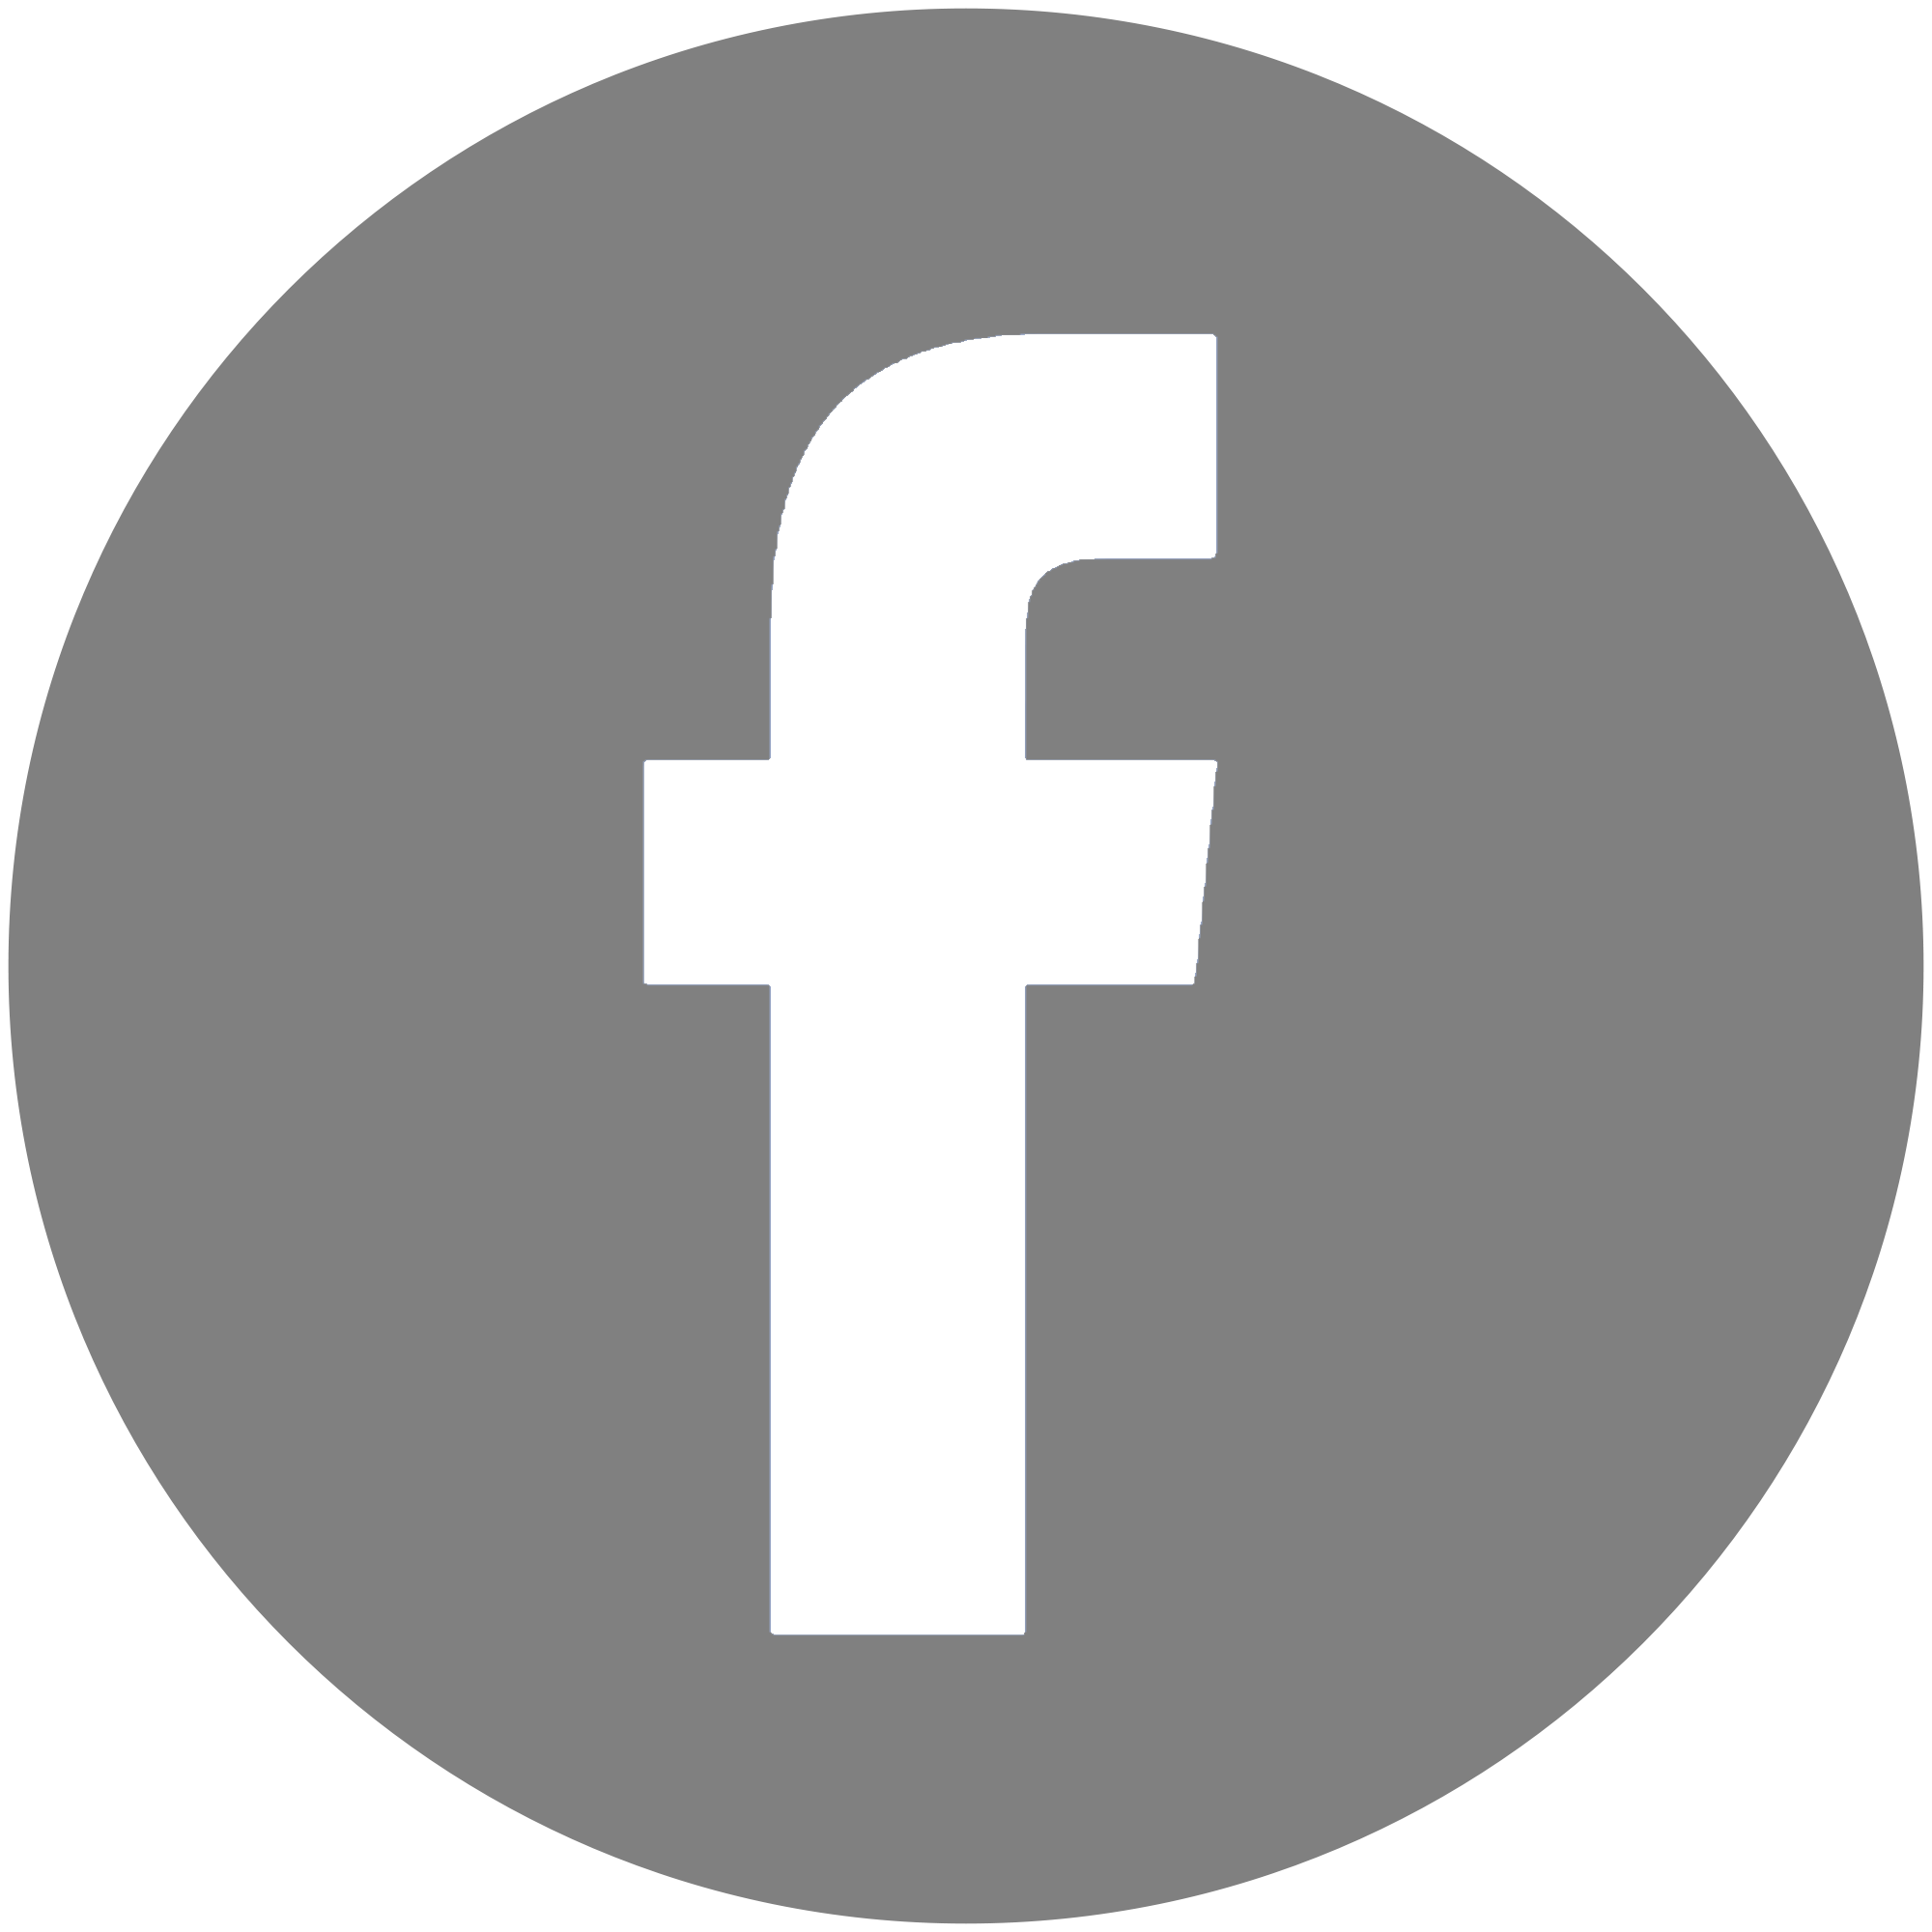 Facebook icon clipart clipart kid